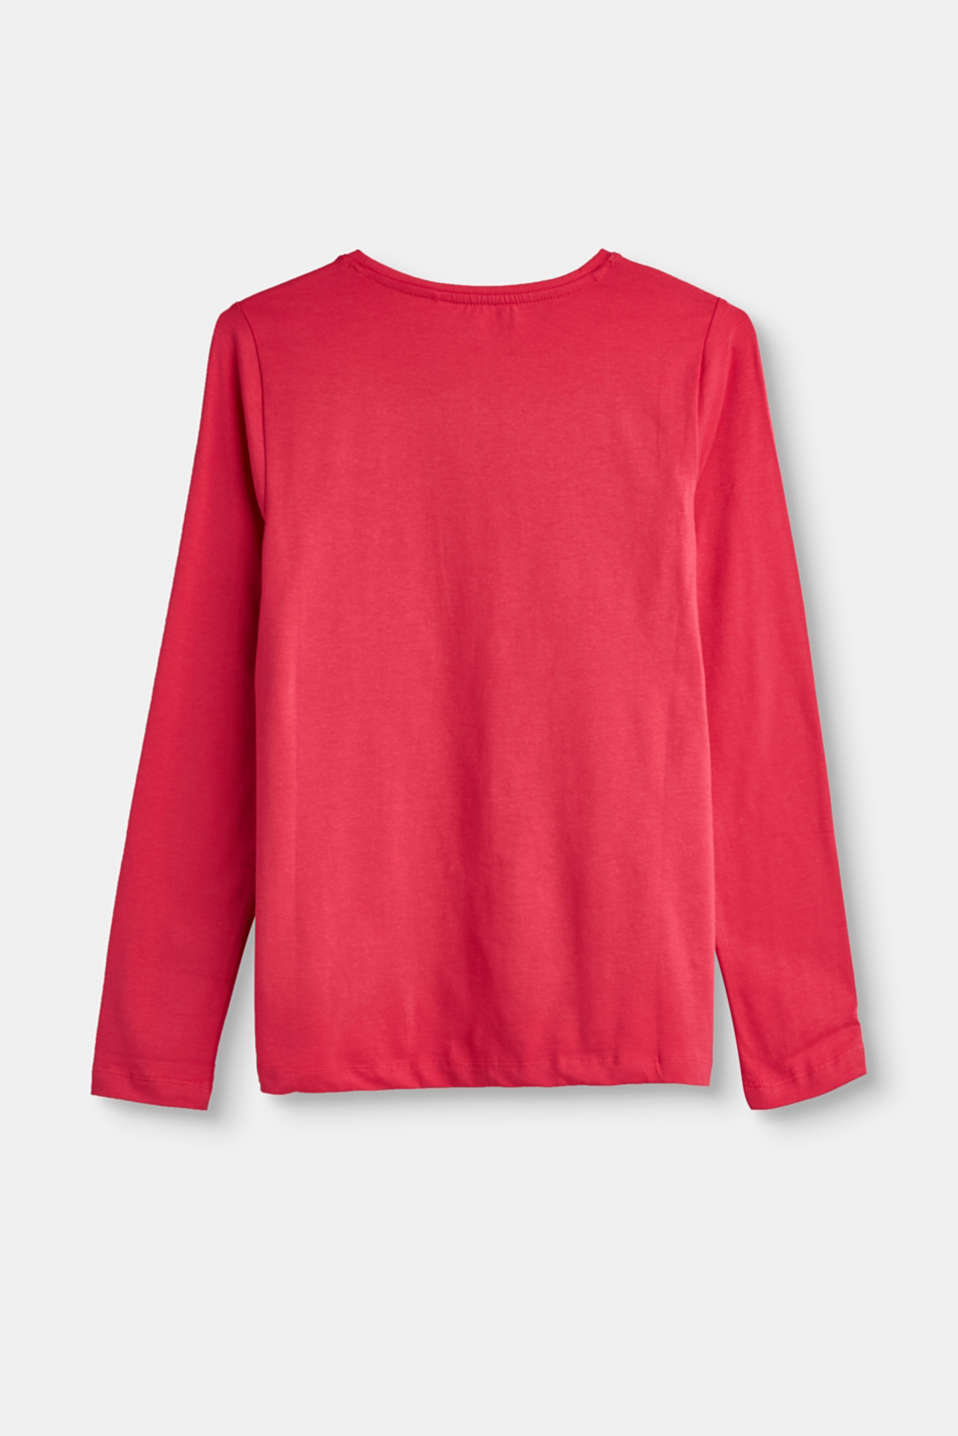 Basic stretch cotton long sleeve top